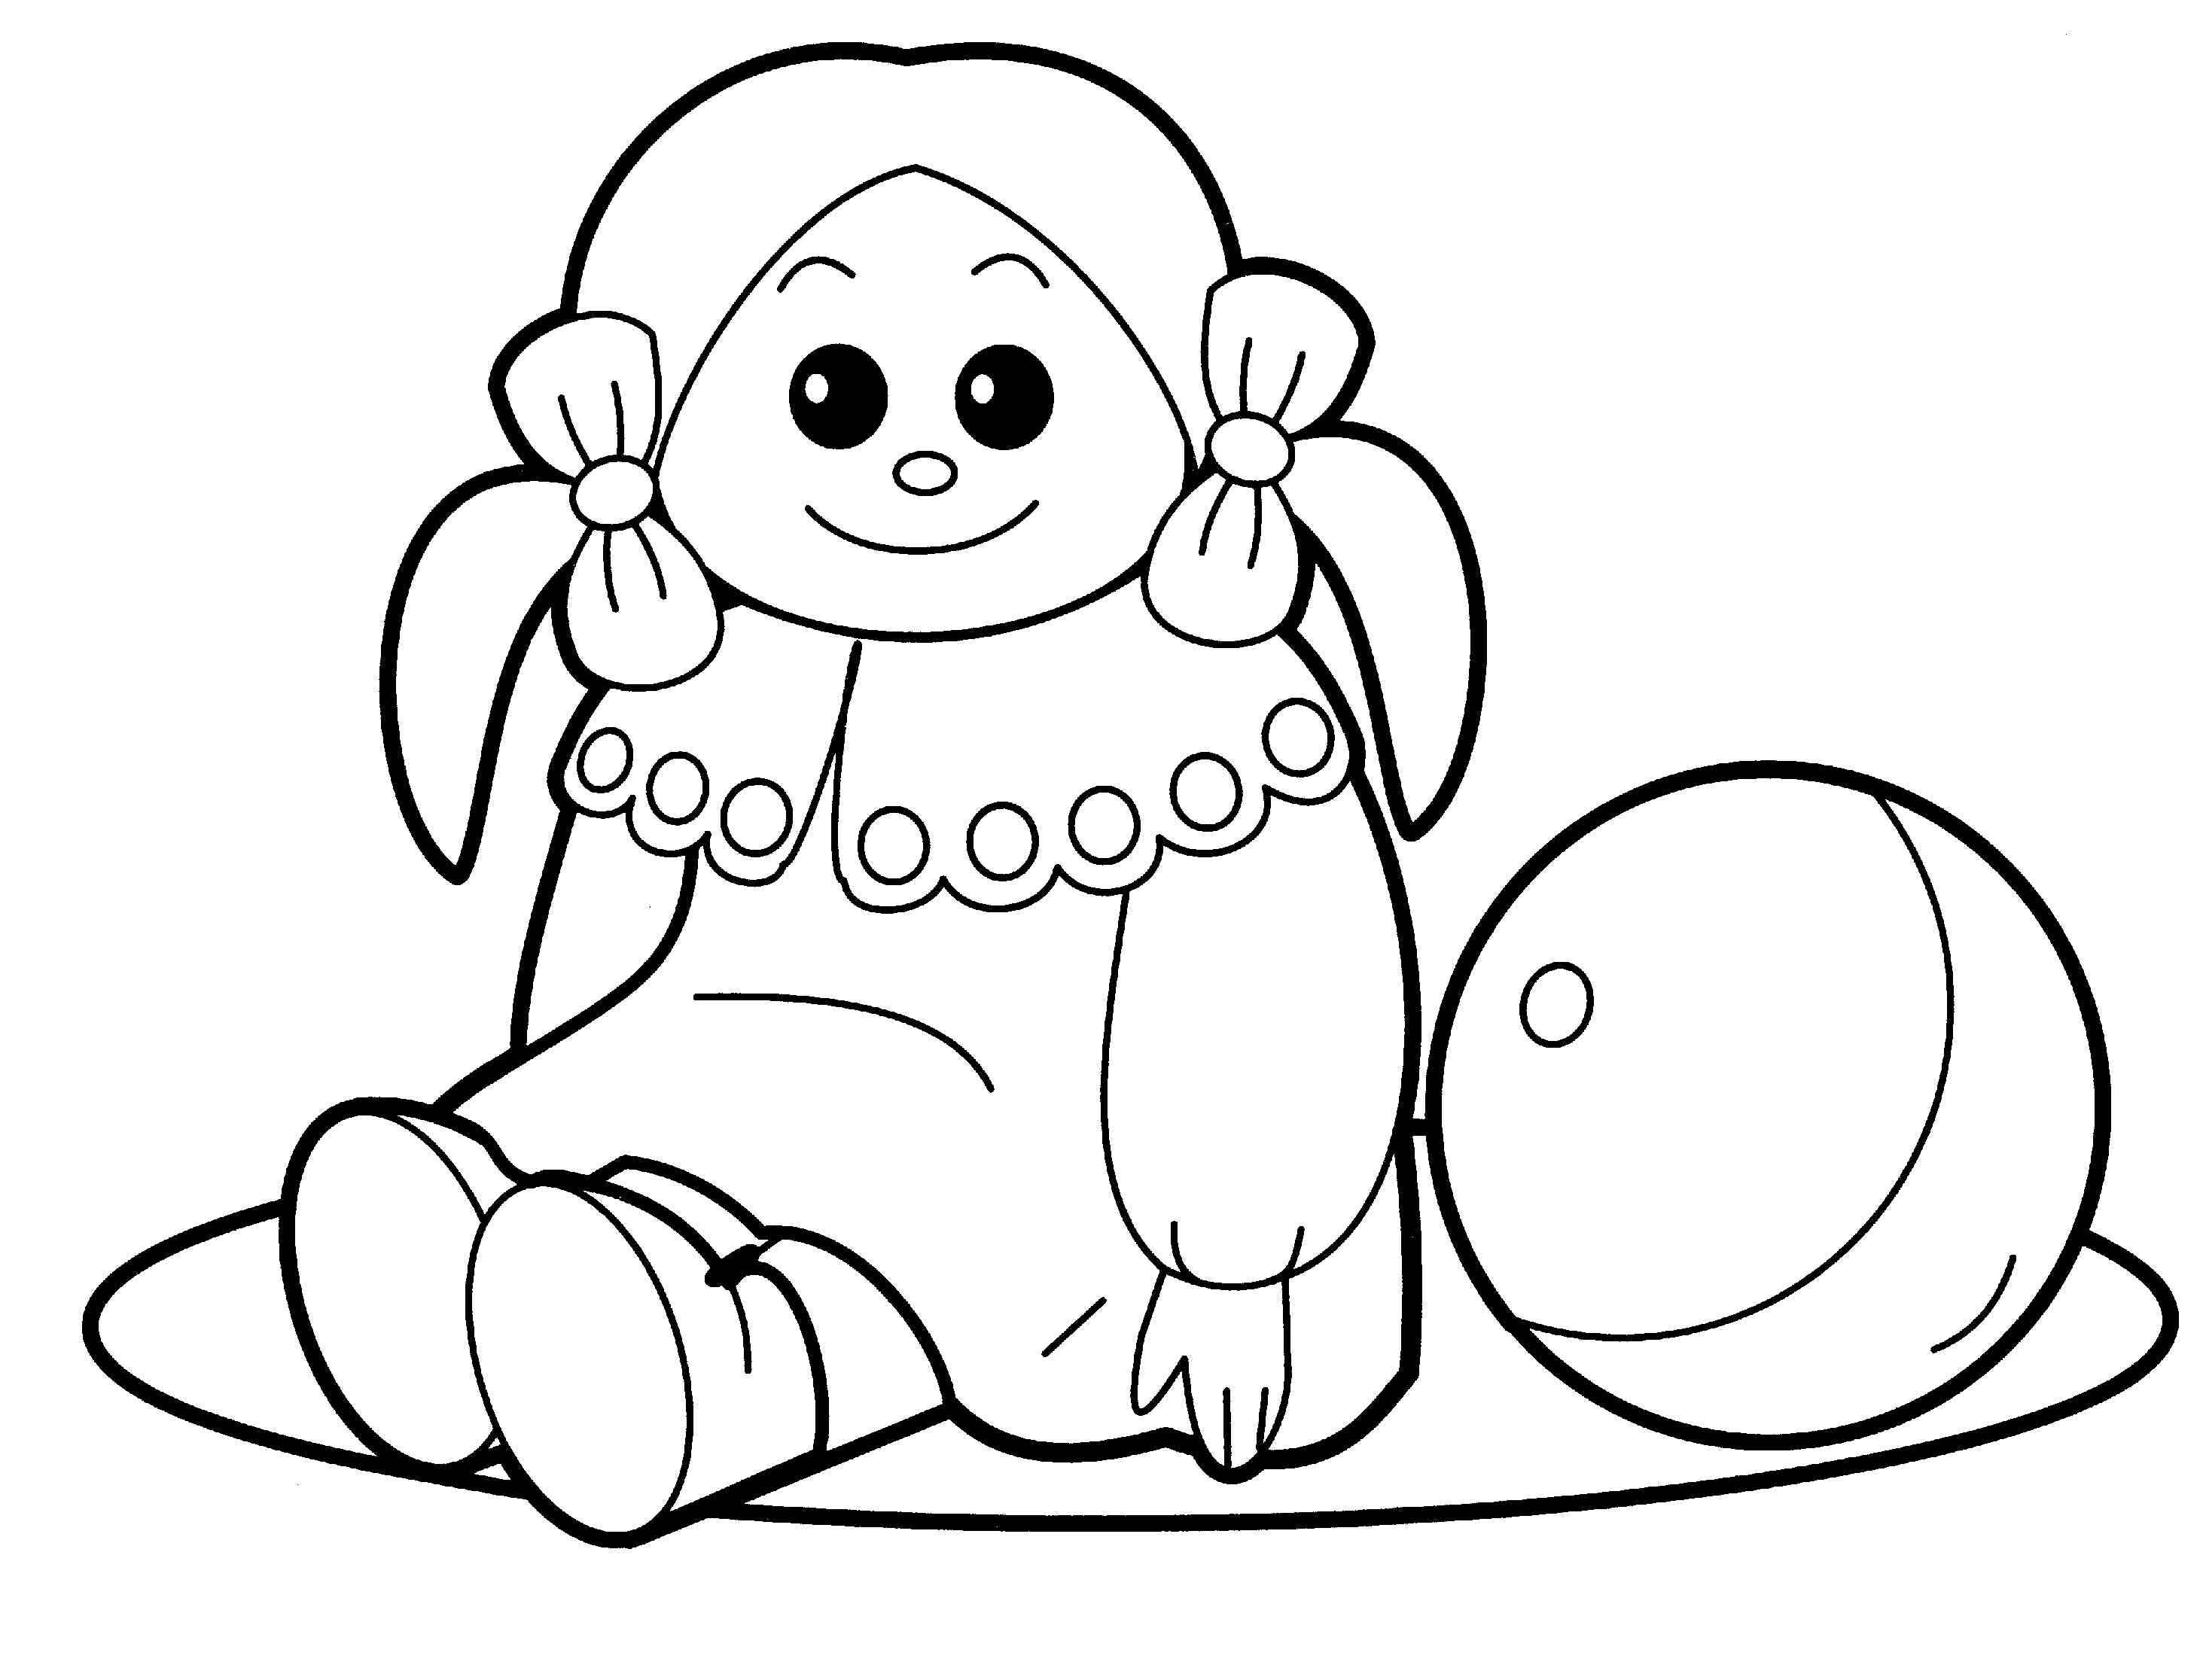 Coloring Pages Baby Doll Coloring Page free printable baby doll coloring pages az page auromas com